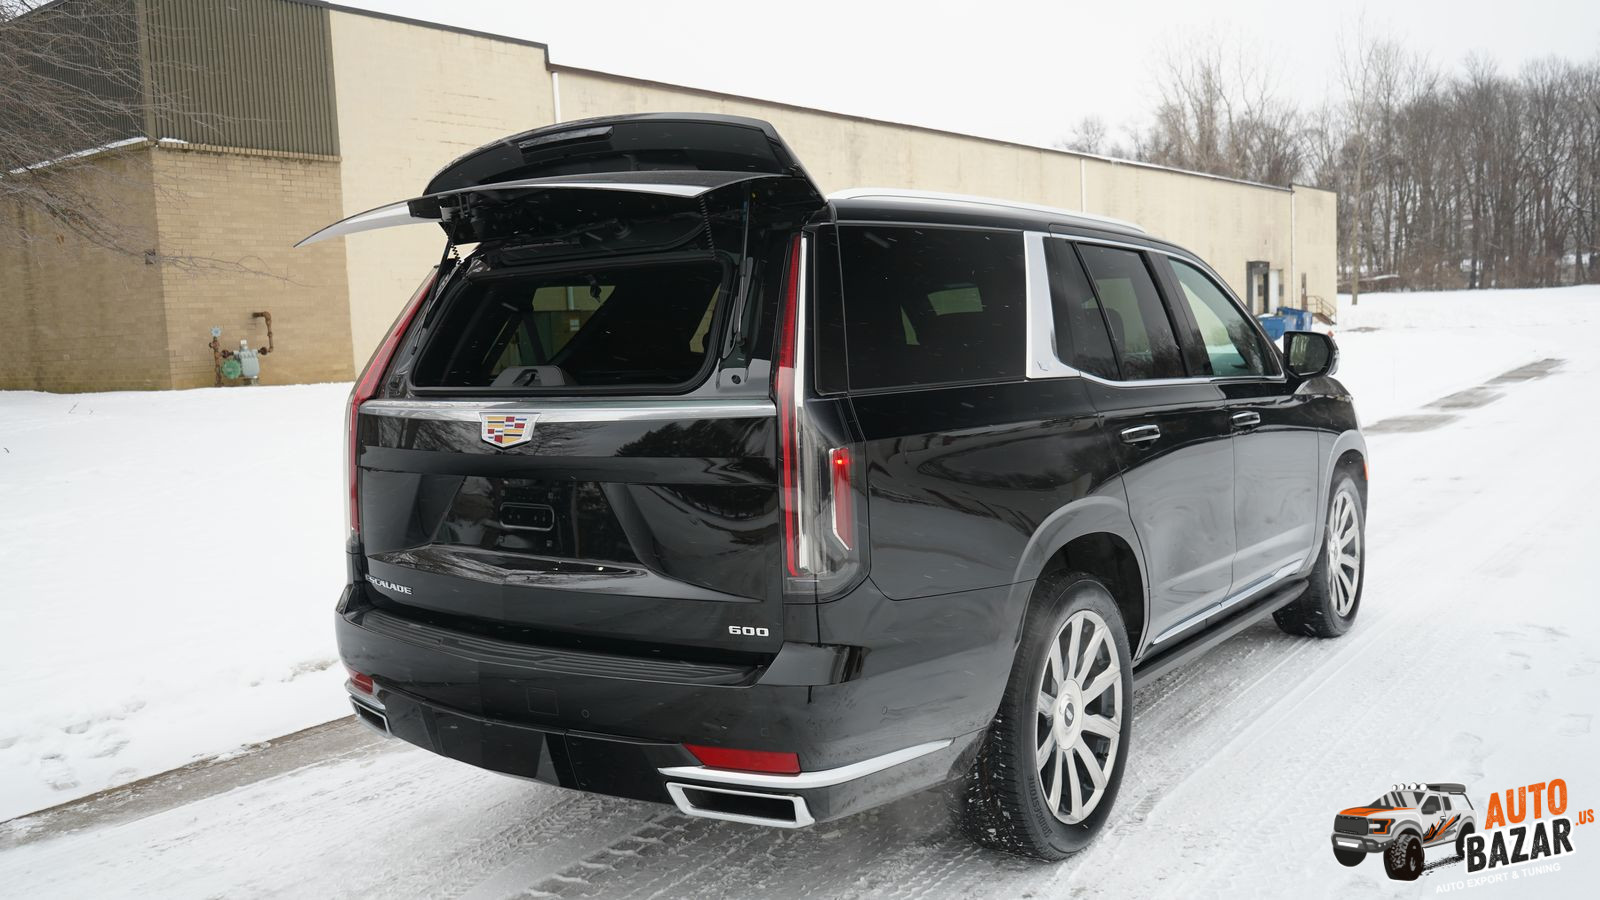 /storage/inventories/1103/2021 Cadillac Escalade 1103 (12).JPG